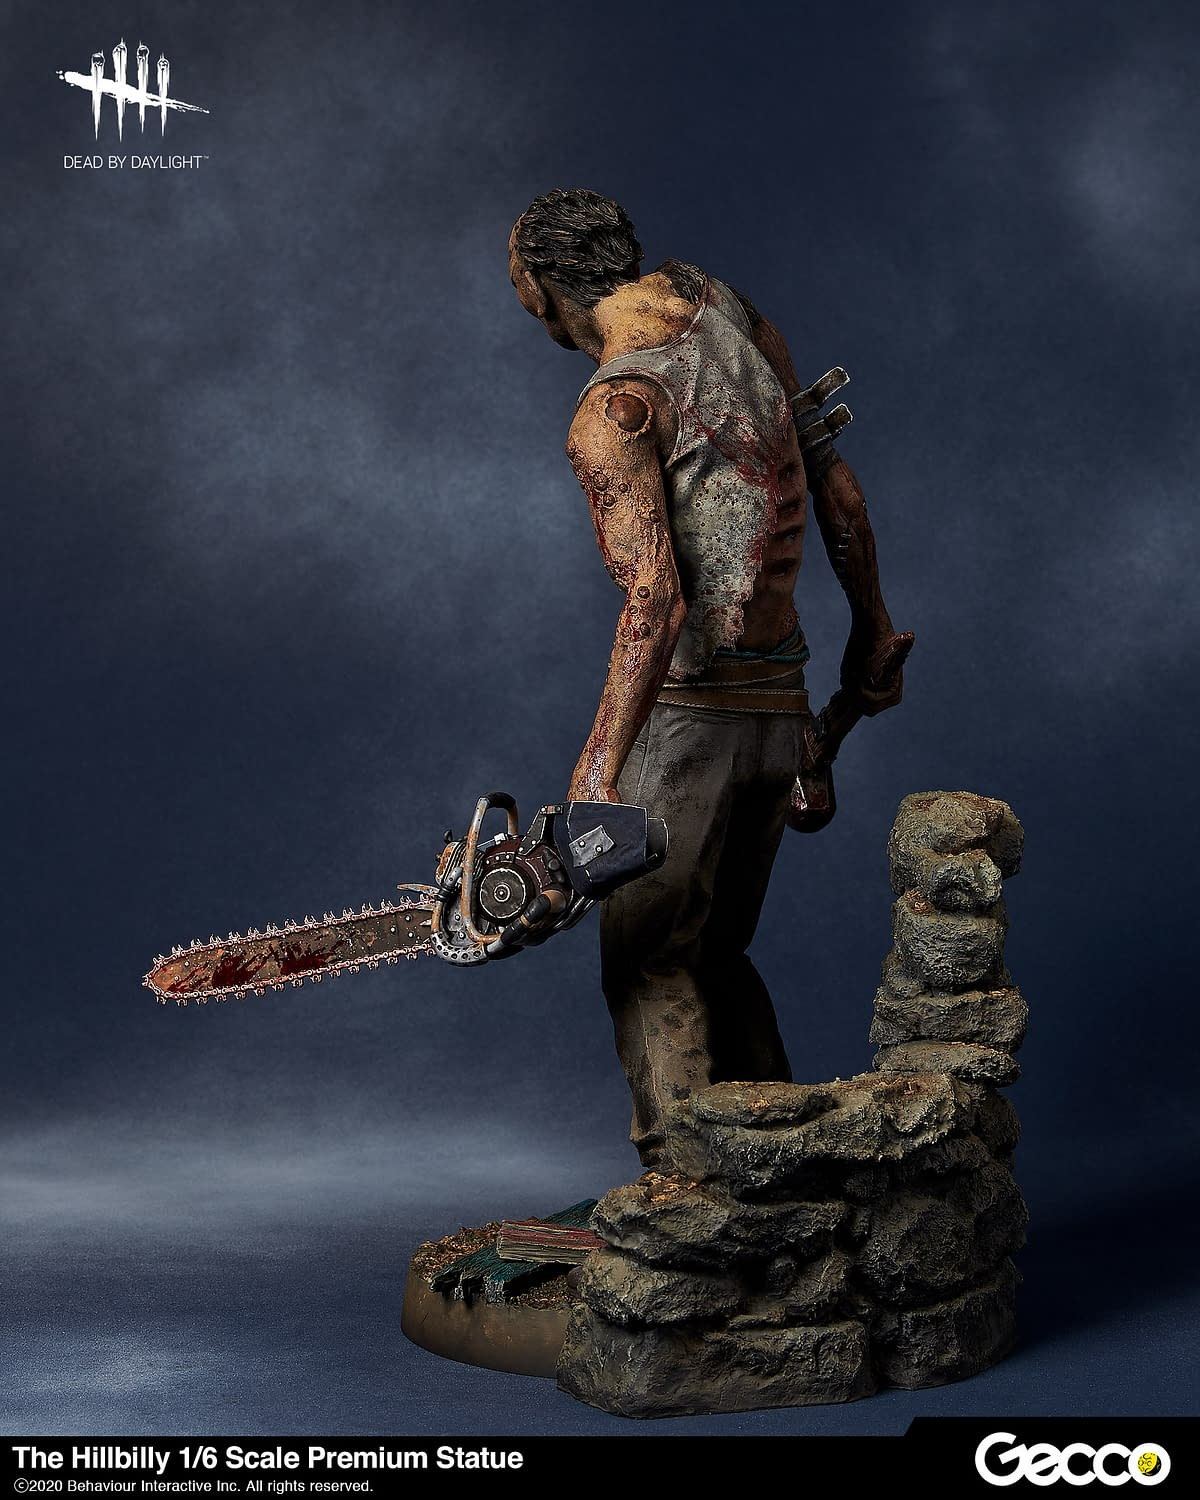 Gecco-Dead-by-Daylight-Hillbilly-Statue-007